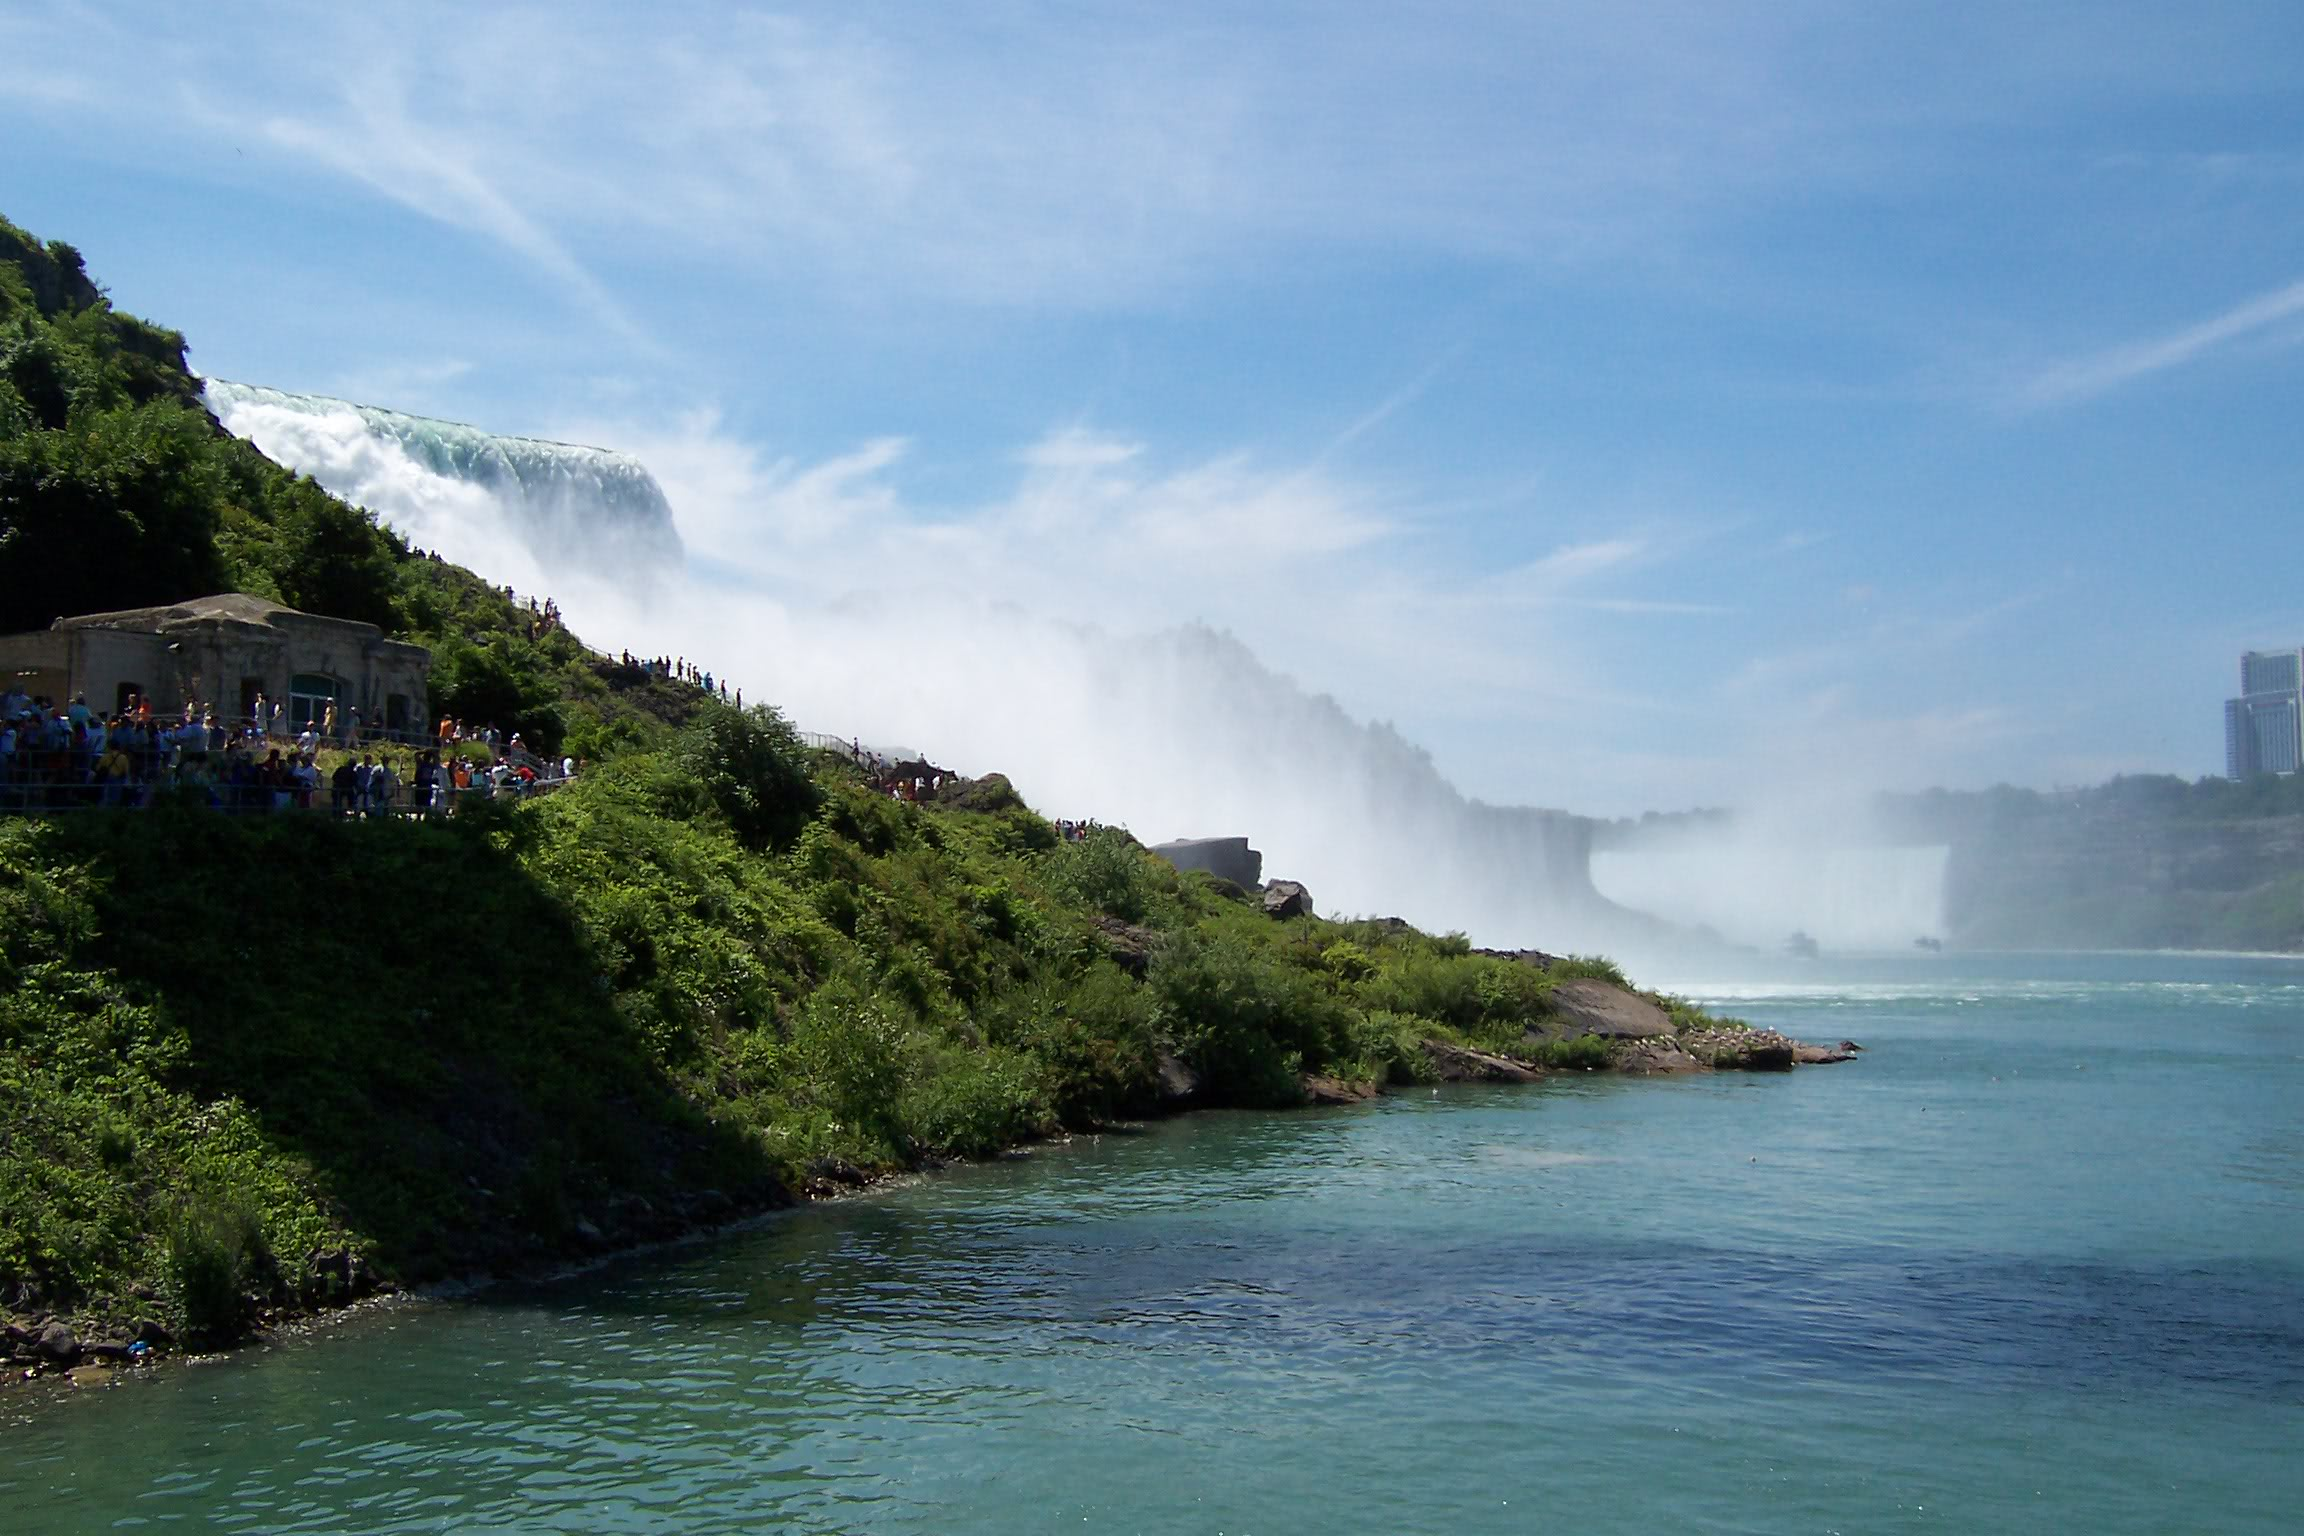 11 The Beauty of Niagara Falls